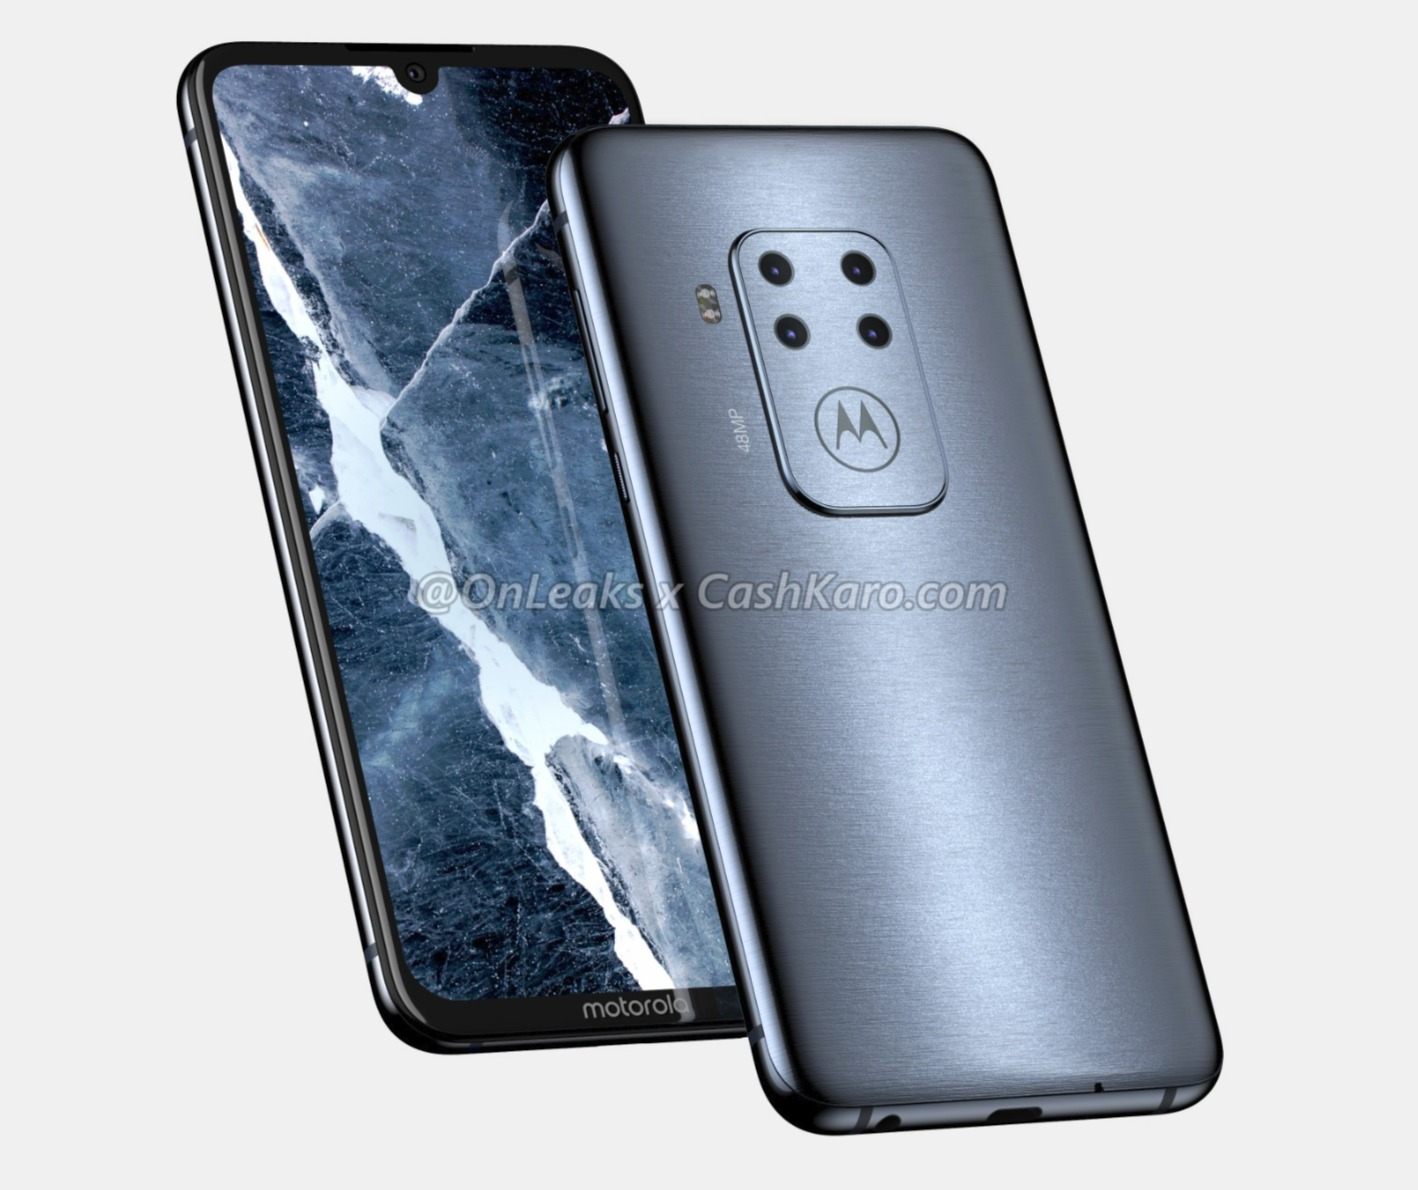 Motorola April 2019 Leak